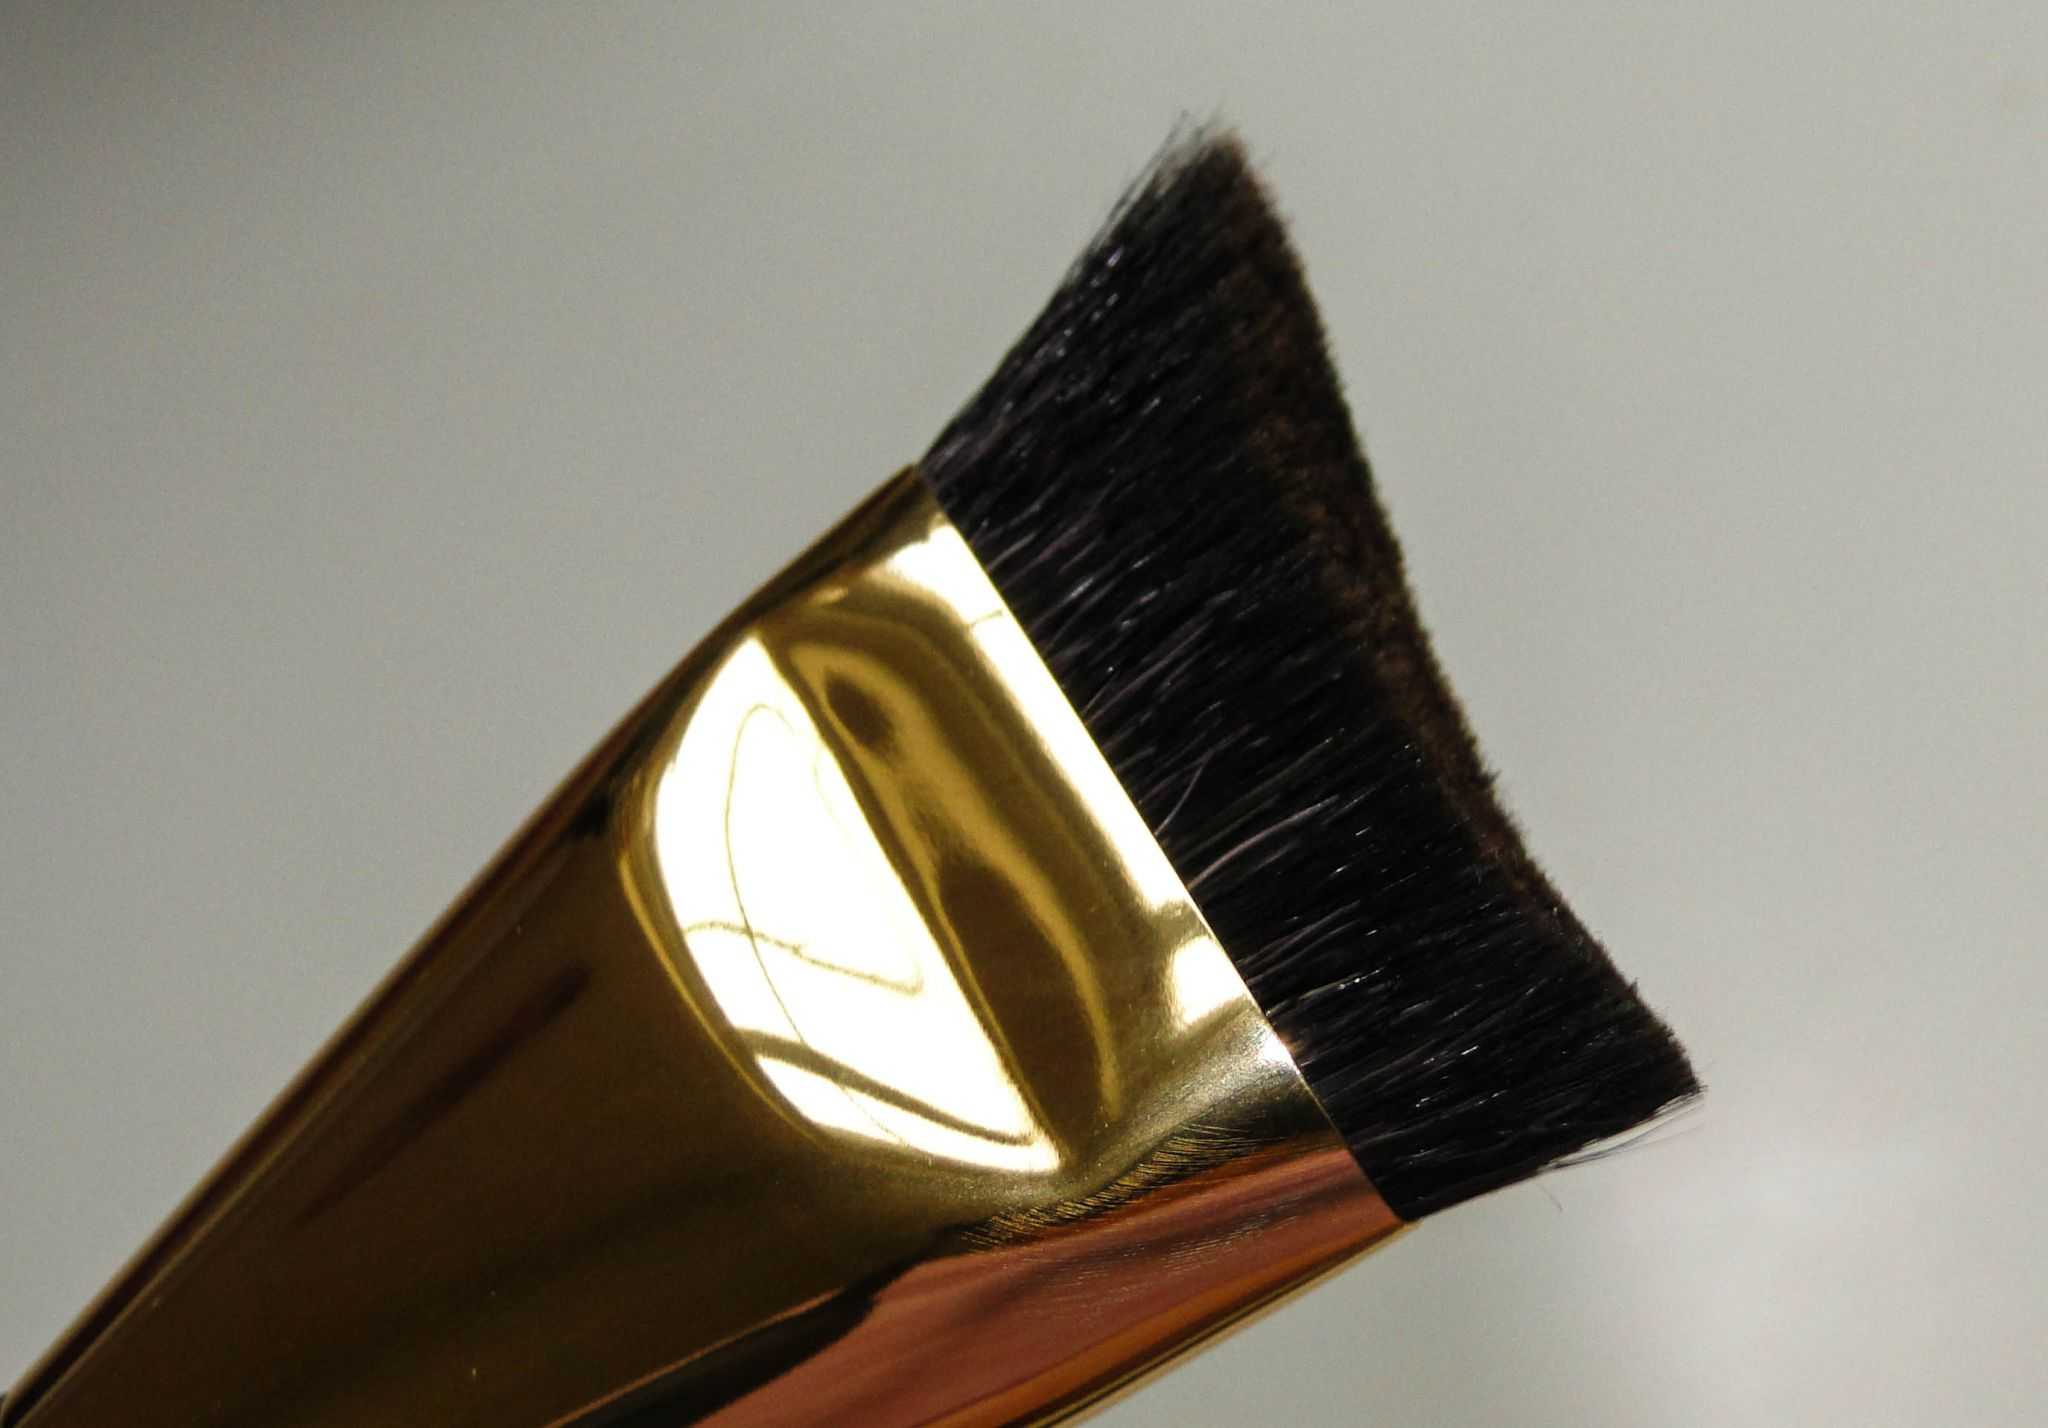 Estee Lauder Sculpting Foundation Brush 2-2